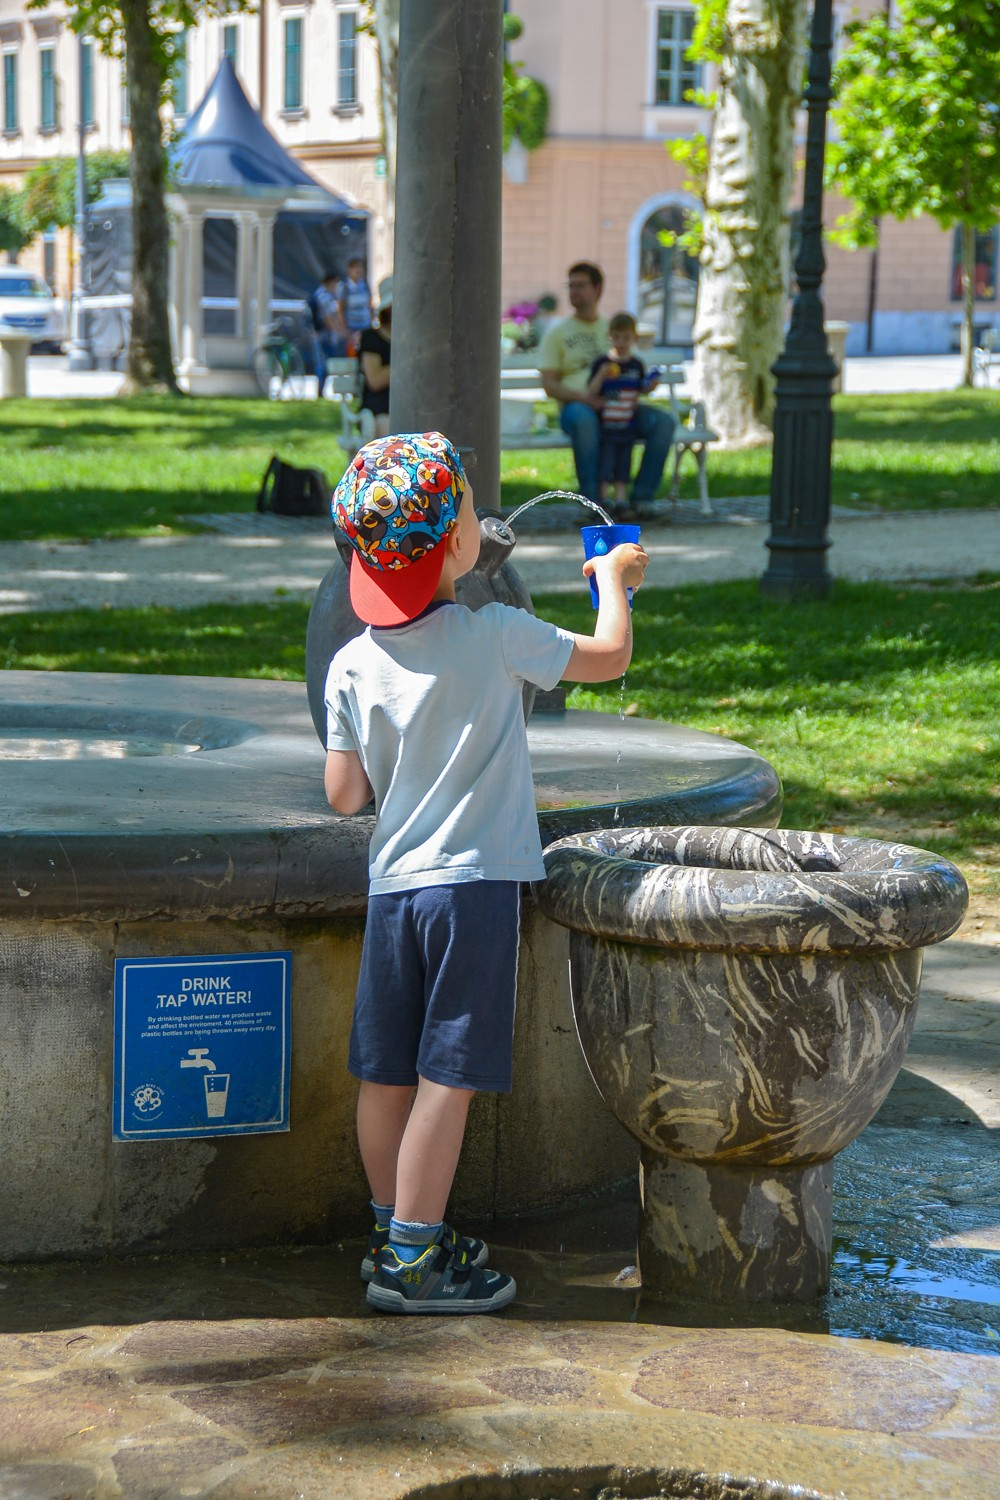 A boy drinks water from a public water tap in Ljubljana (Photo credit: The visit Ljubljana website)